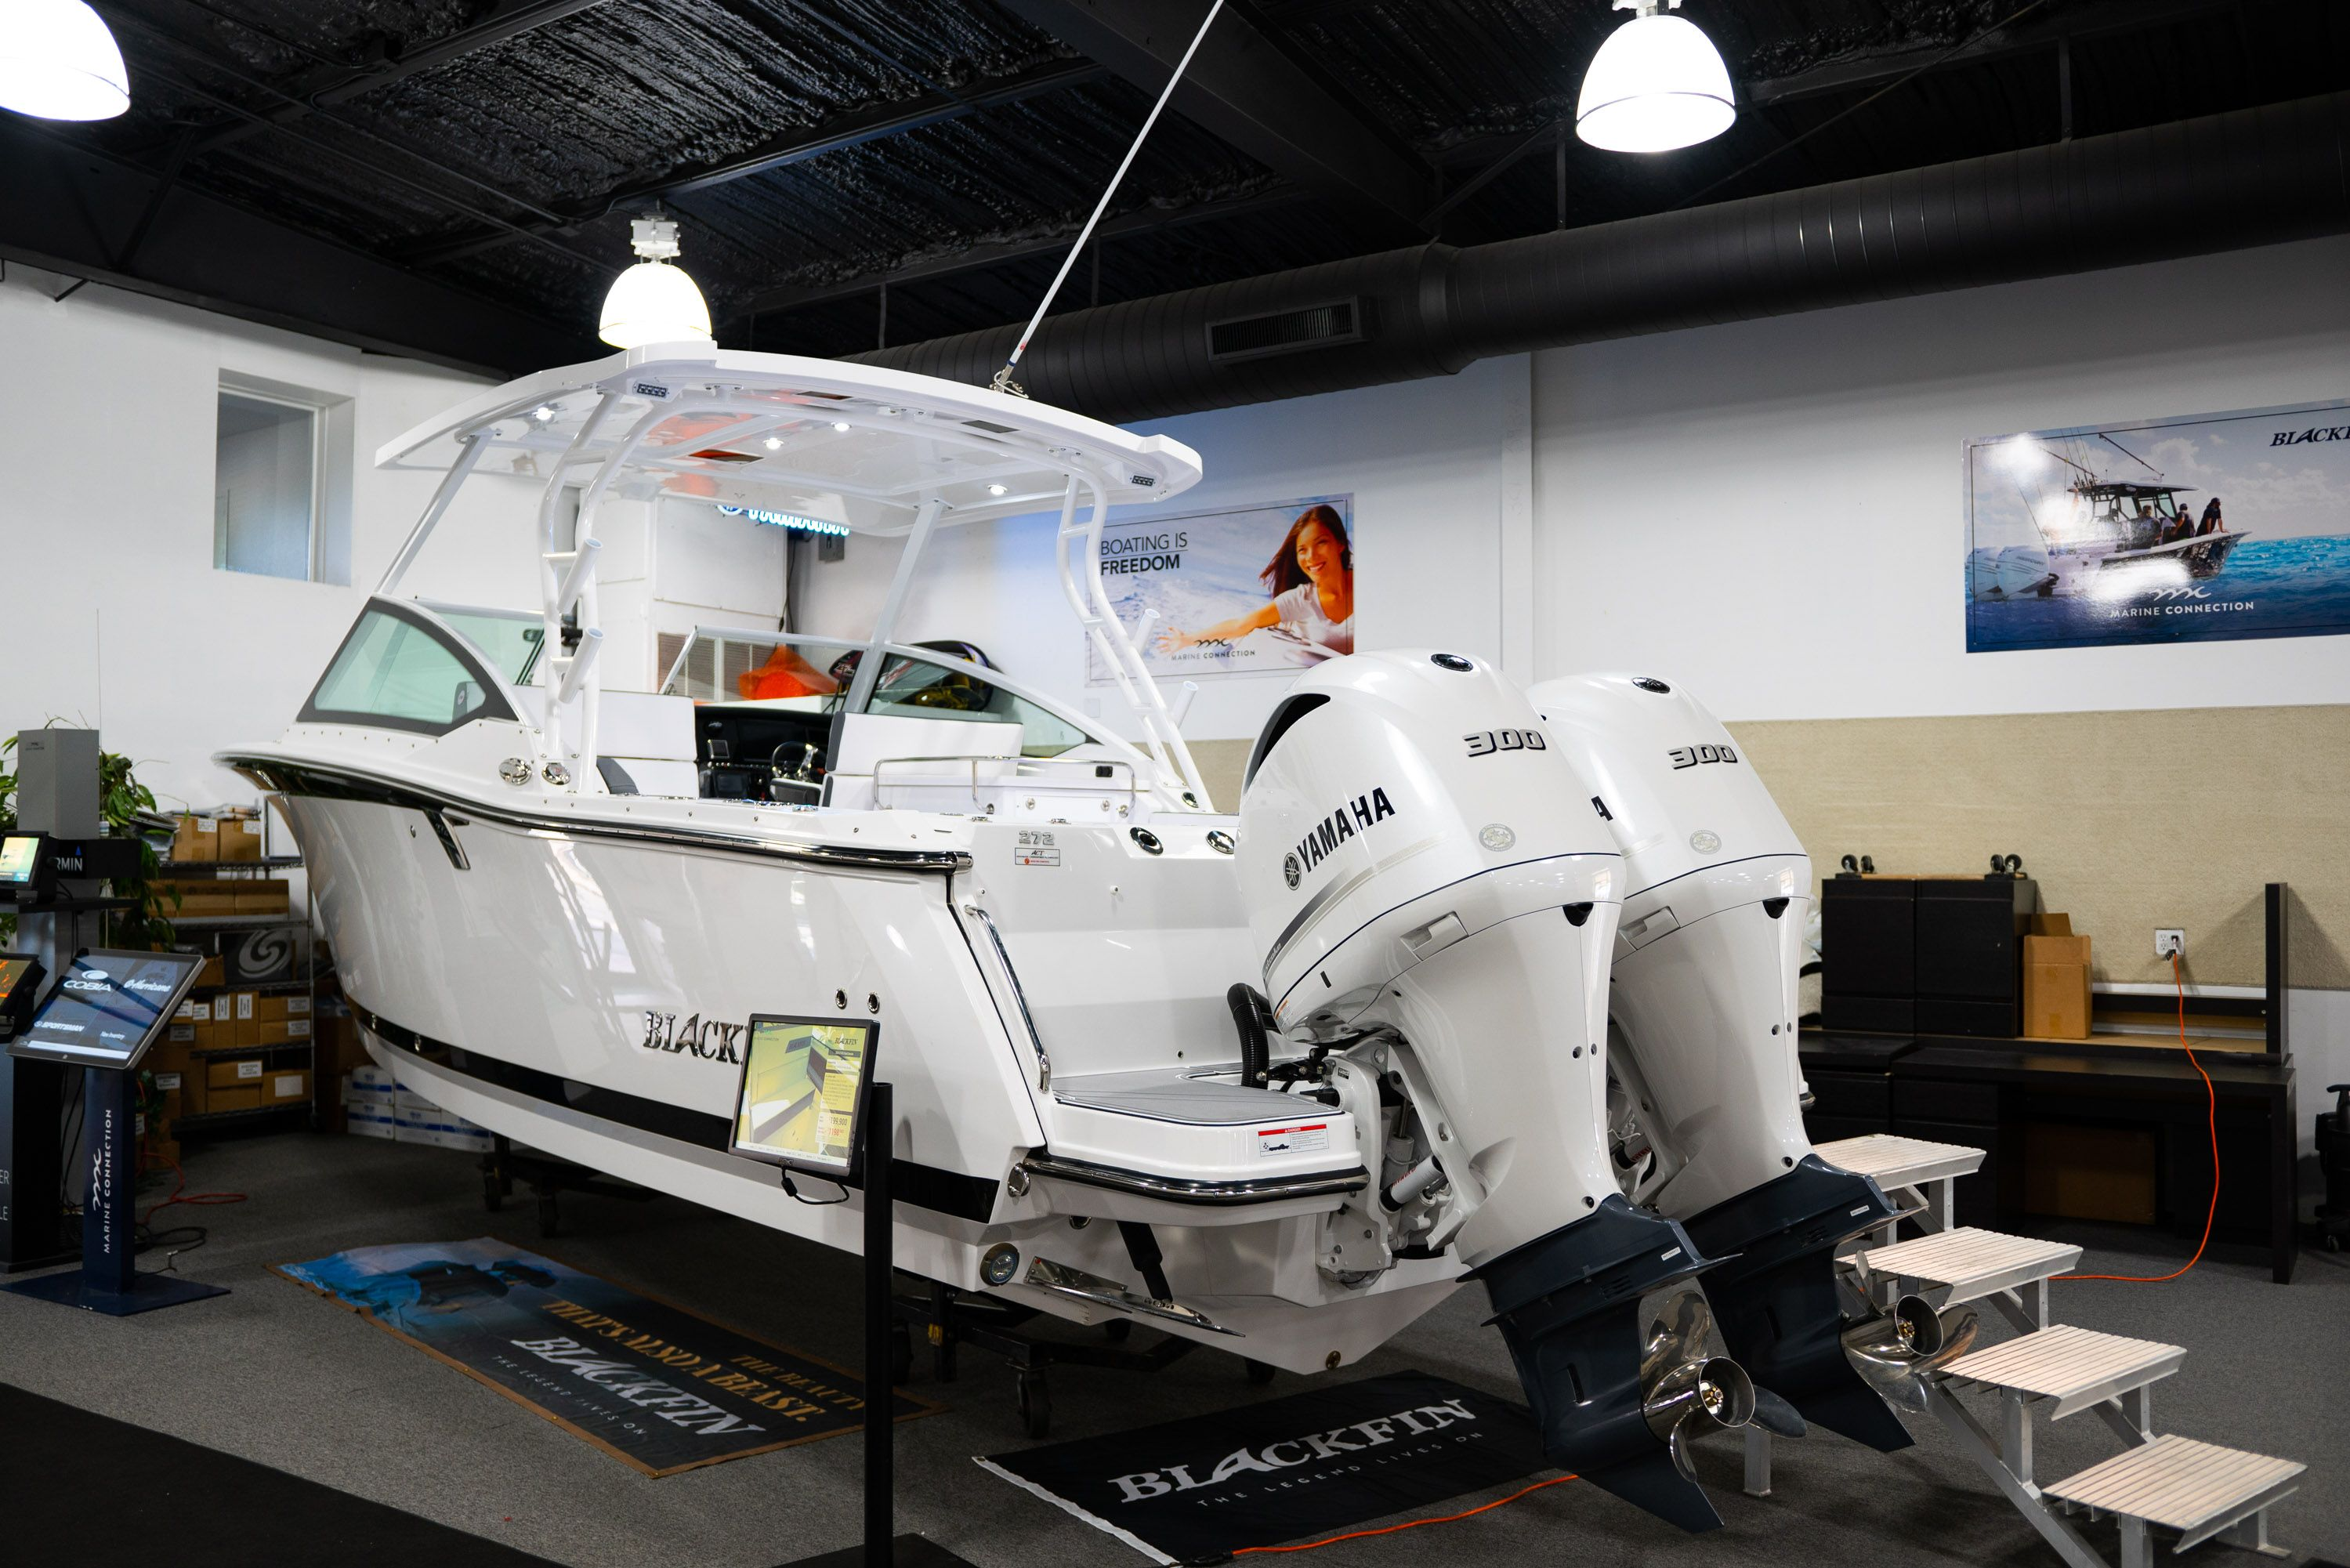 Thumbnail 1 for New 2020 Blackfin 272DC Dual Console boat for sale in West Palm Beach, FL